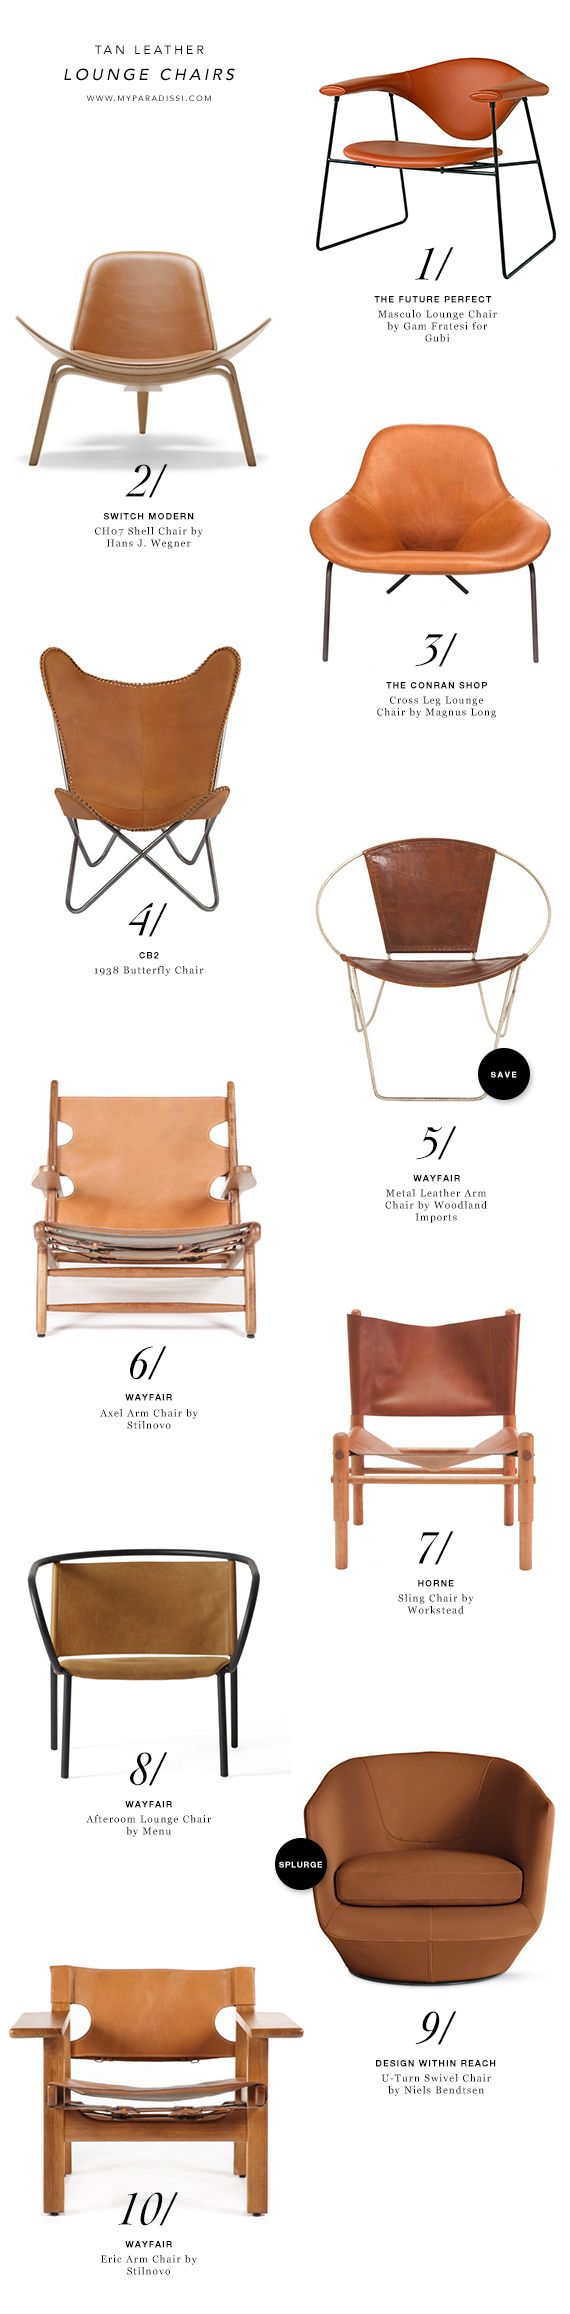 10 BEST: Tan leather lounge chairs | Objects | Furniture ...